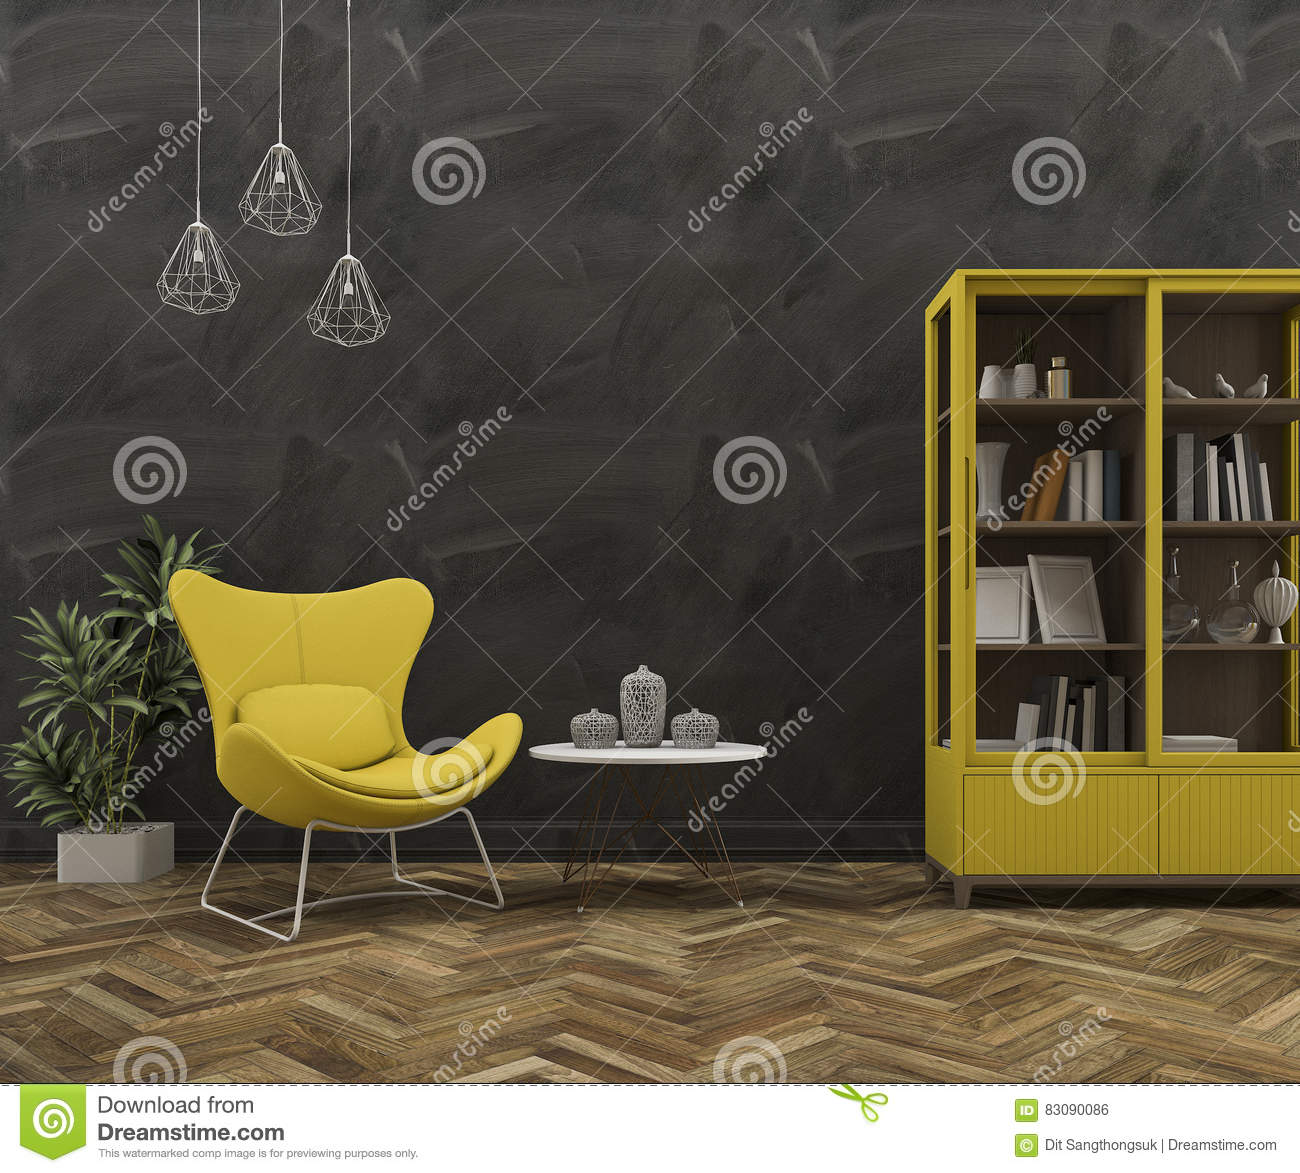 3d rendering loft wall with beautiful yellow armchair and furniture stock - Loftwall